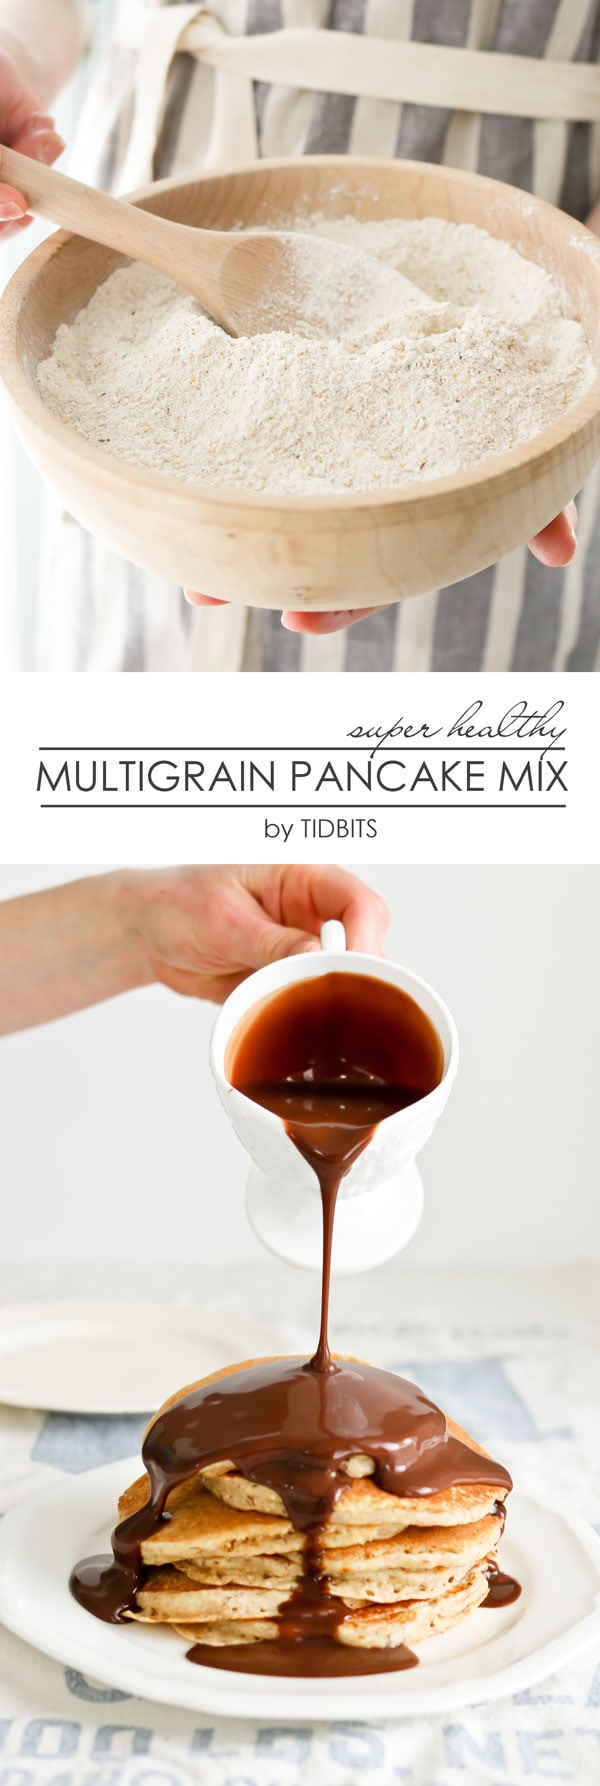 MULTIGRAIN PANCAKE MIX - make it ahead of time, and throwing together healthy whole grain pancakes and waffles are as easy as any store bought mix - and better for you!